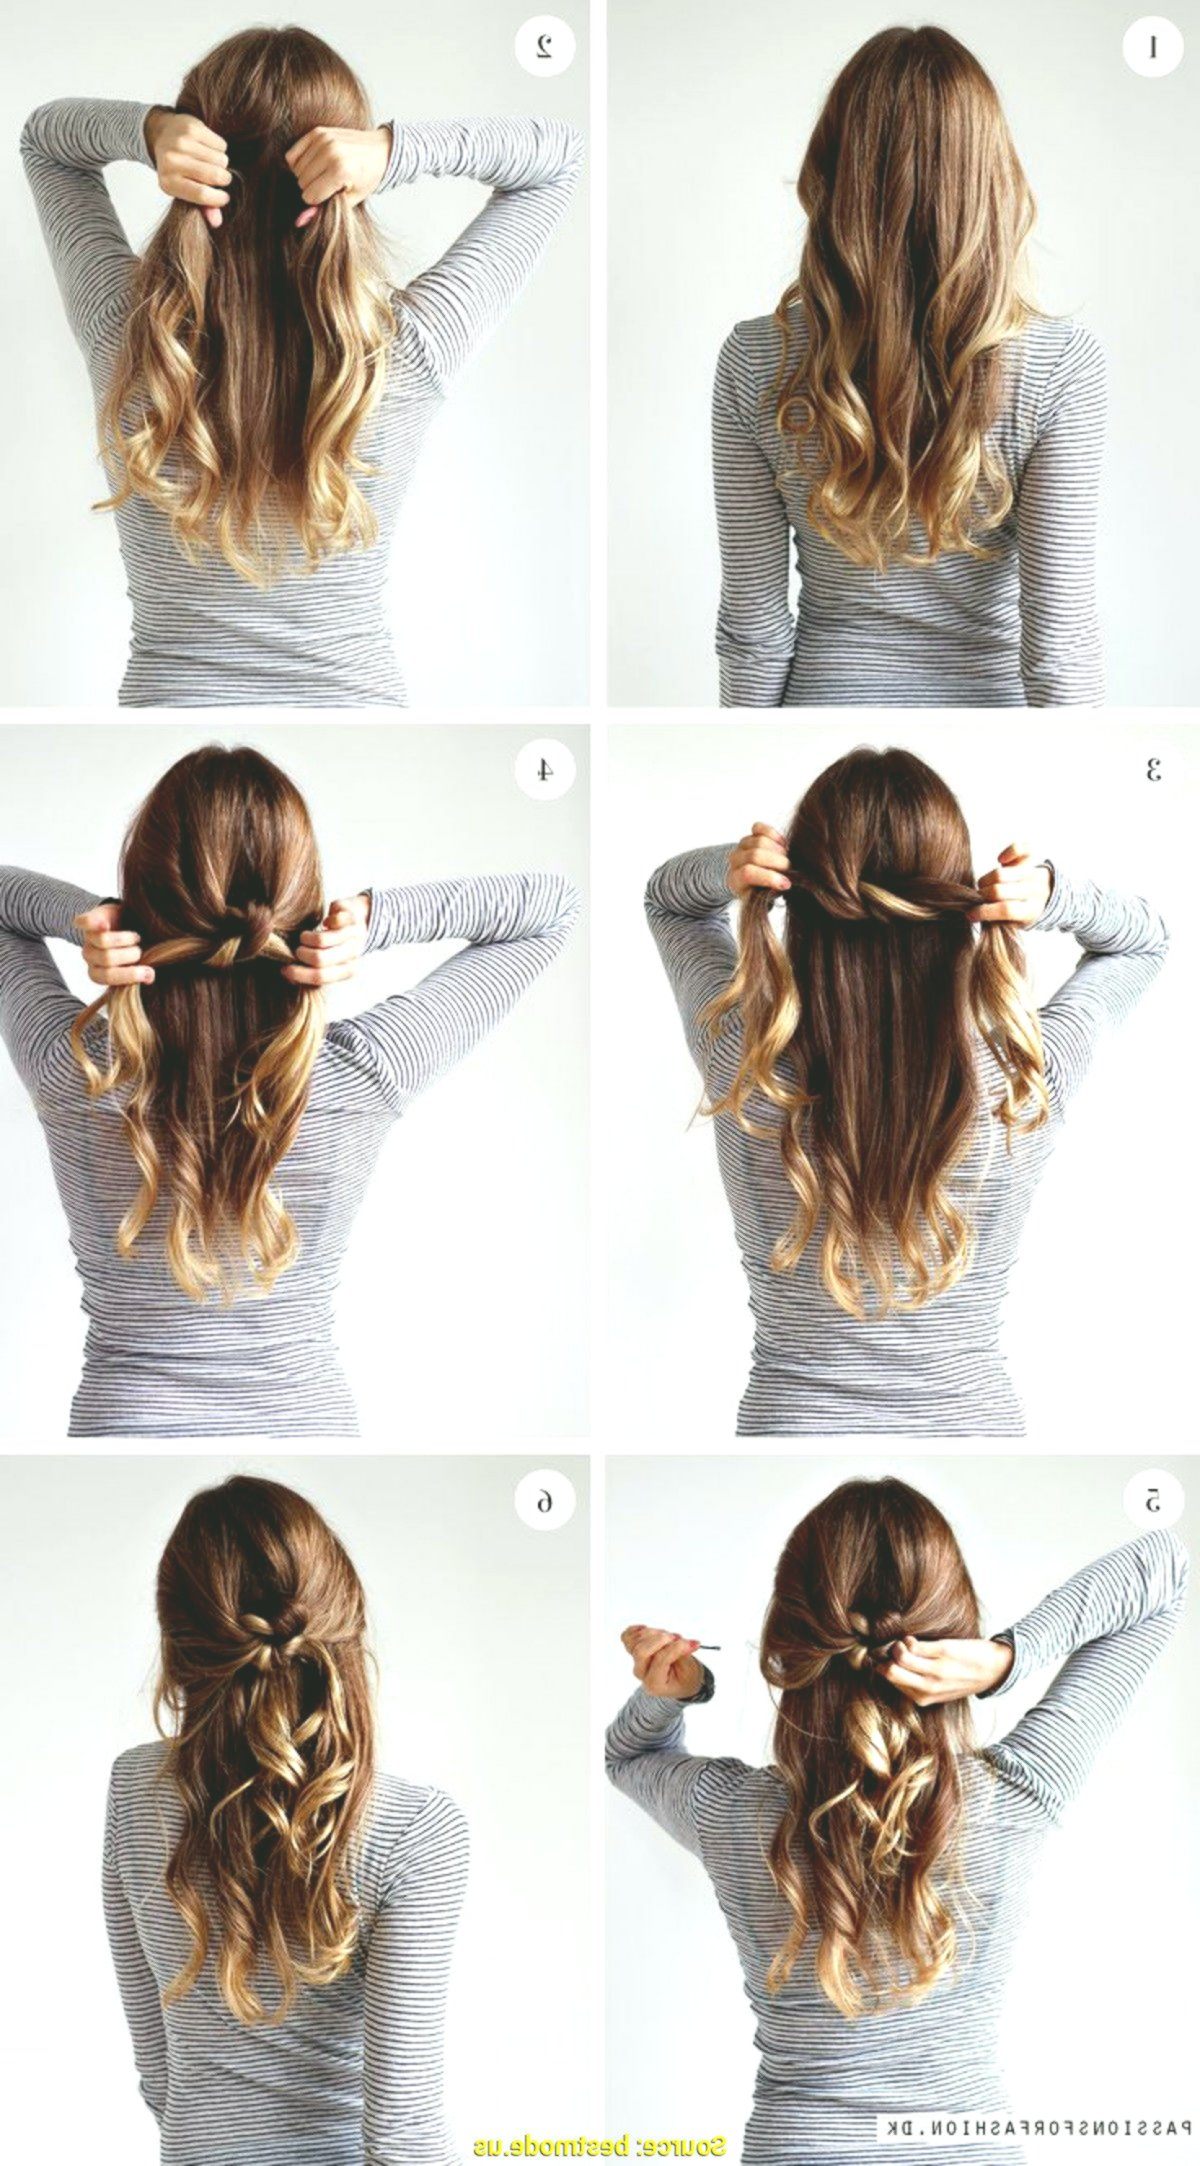 elegant hairstyling instructions image-Awesome hairstyles instructions wall